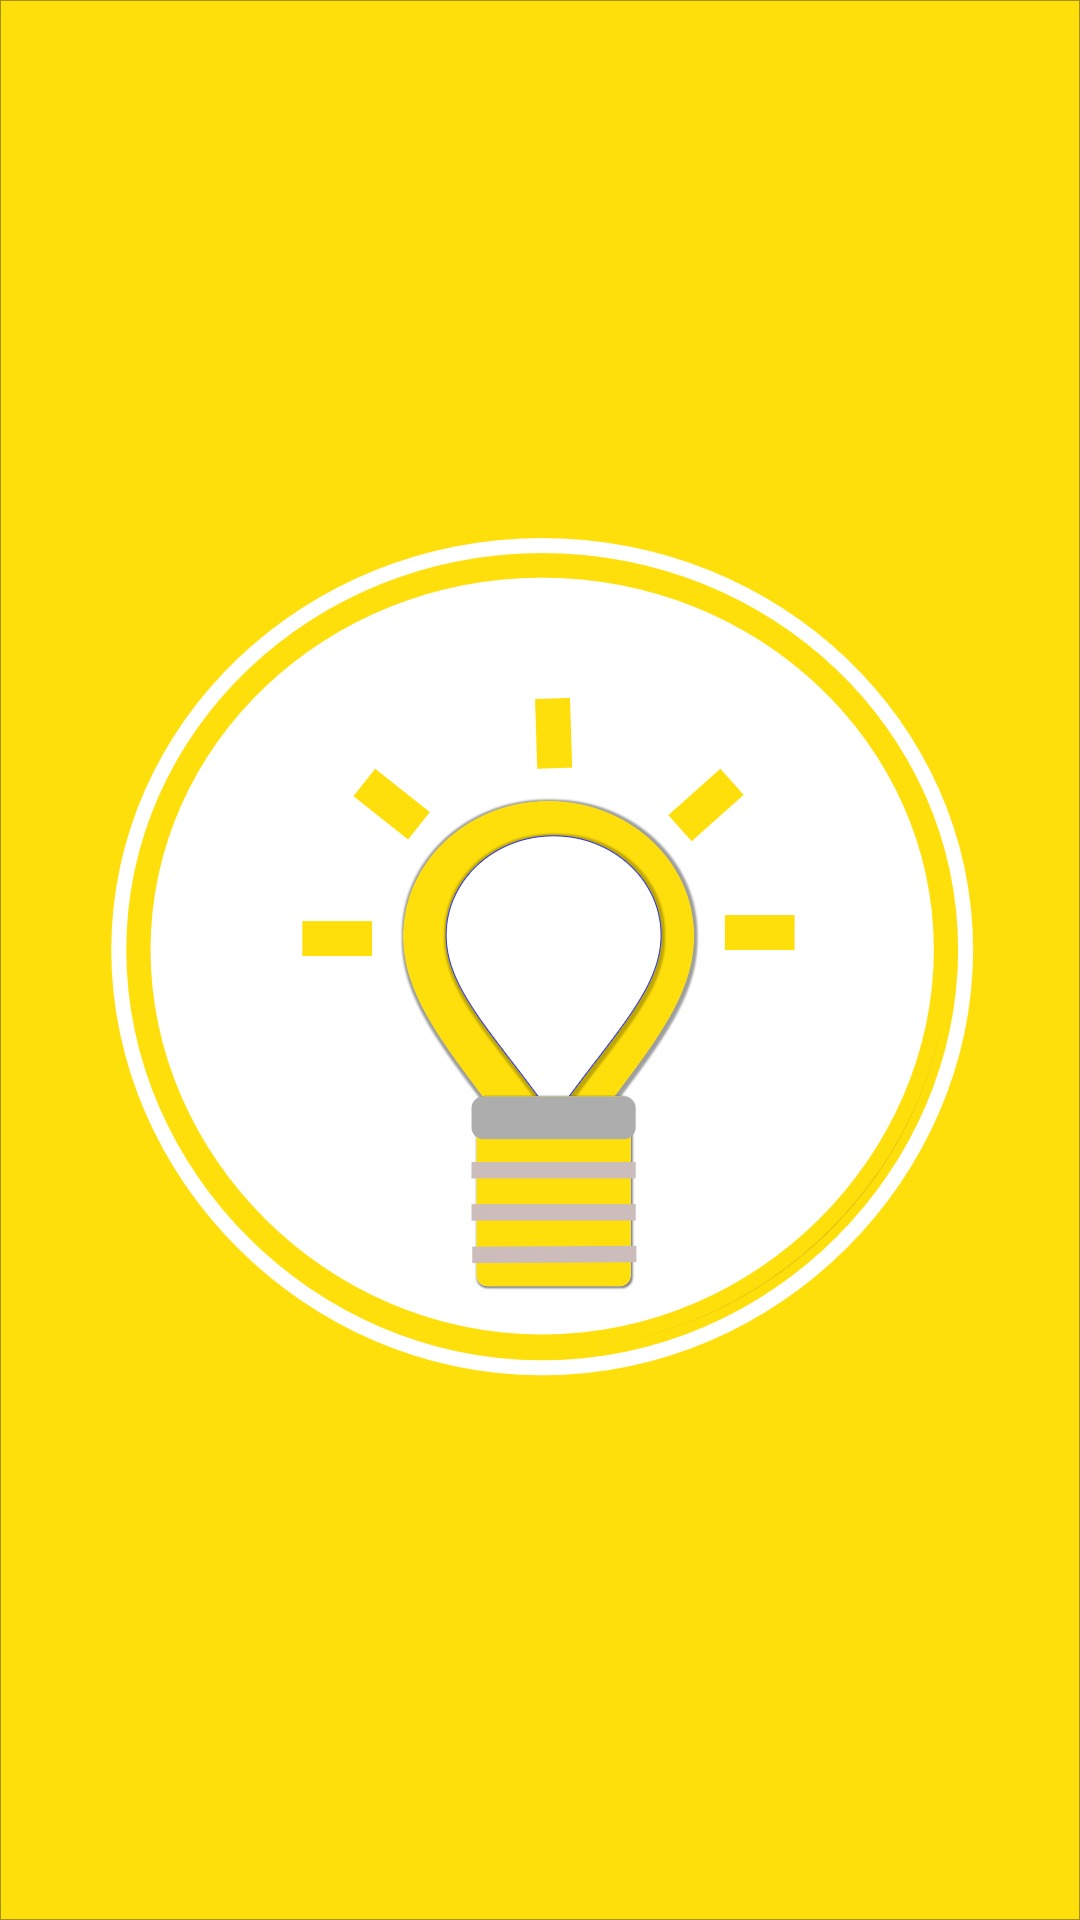 Instagram-cover-lightbulb-yellow-lotnotes.jpg.jpg